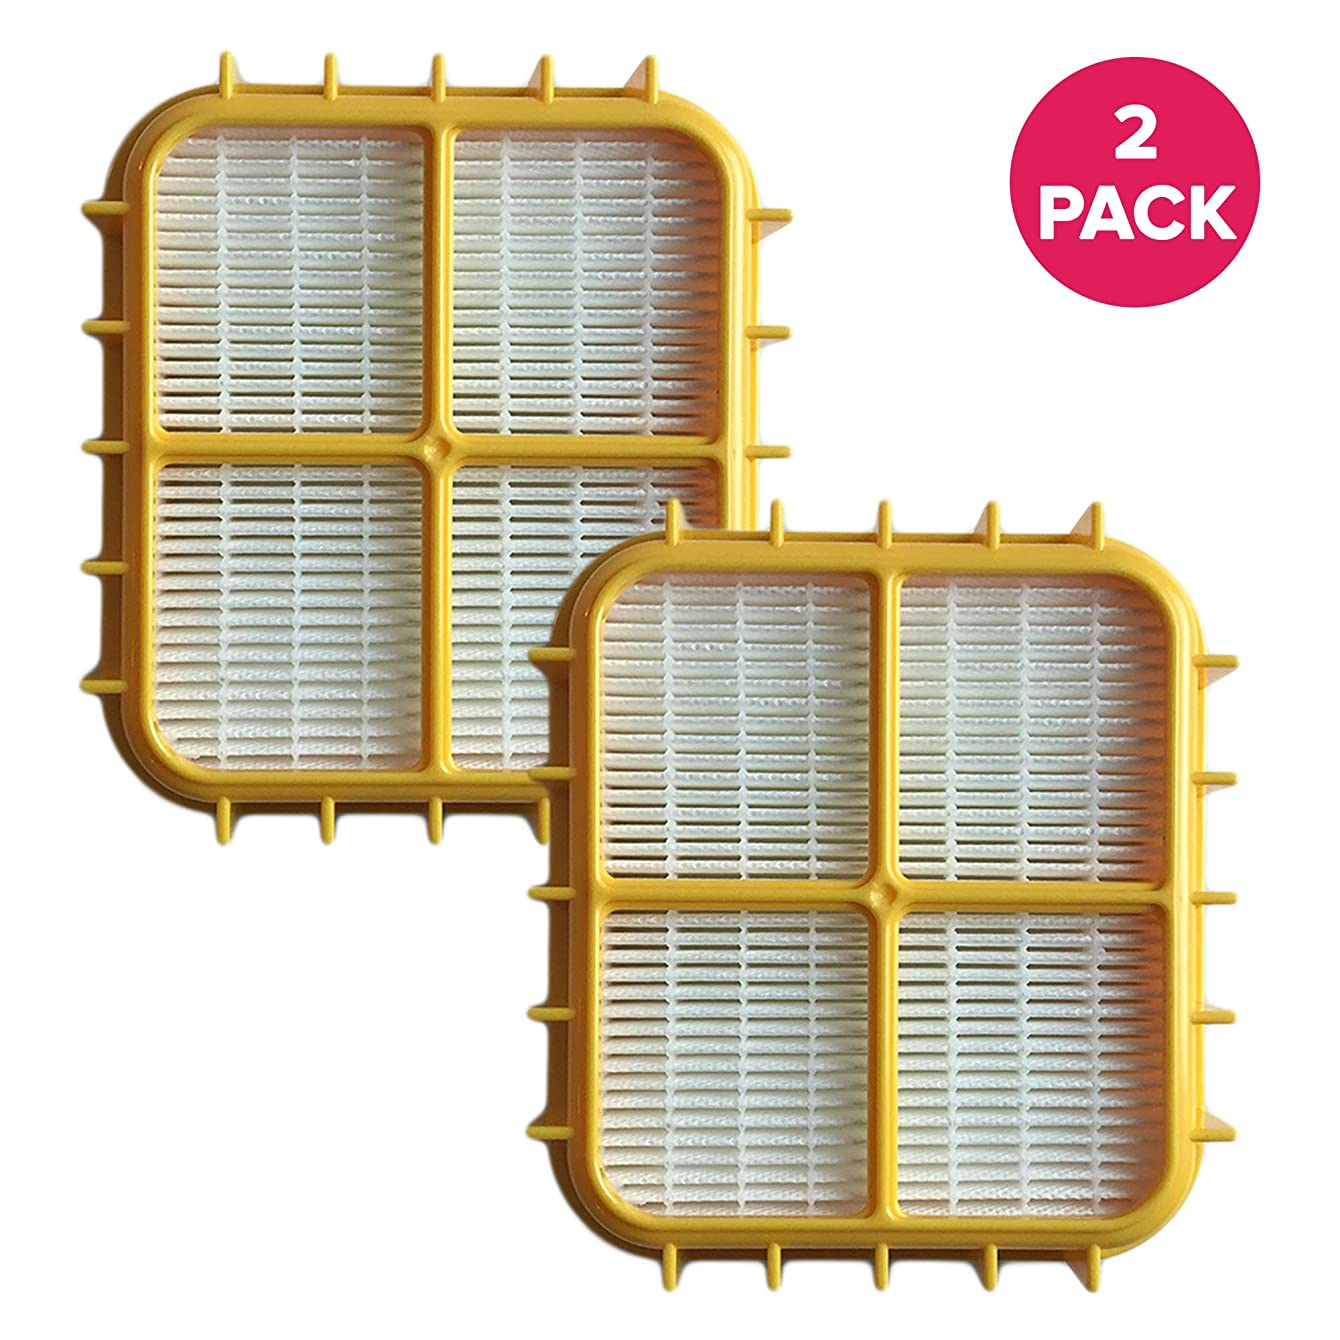 Think Crucial 2 Replacements for Eureka HF-10 HEPA Filter Fits 8800, 8850 & 8900 Series, Compatible With Part # 63347, 633489, 67810-2, H14017 & 63358